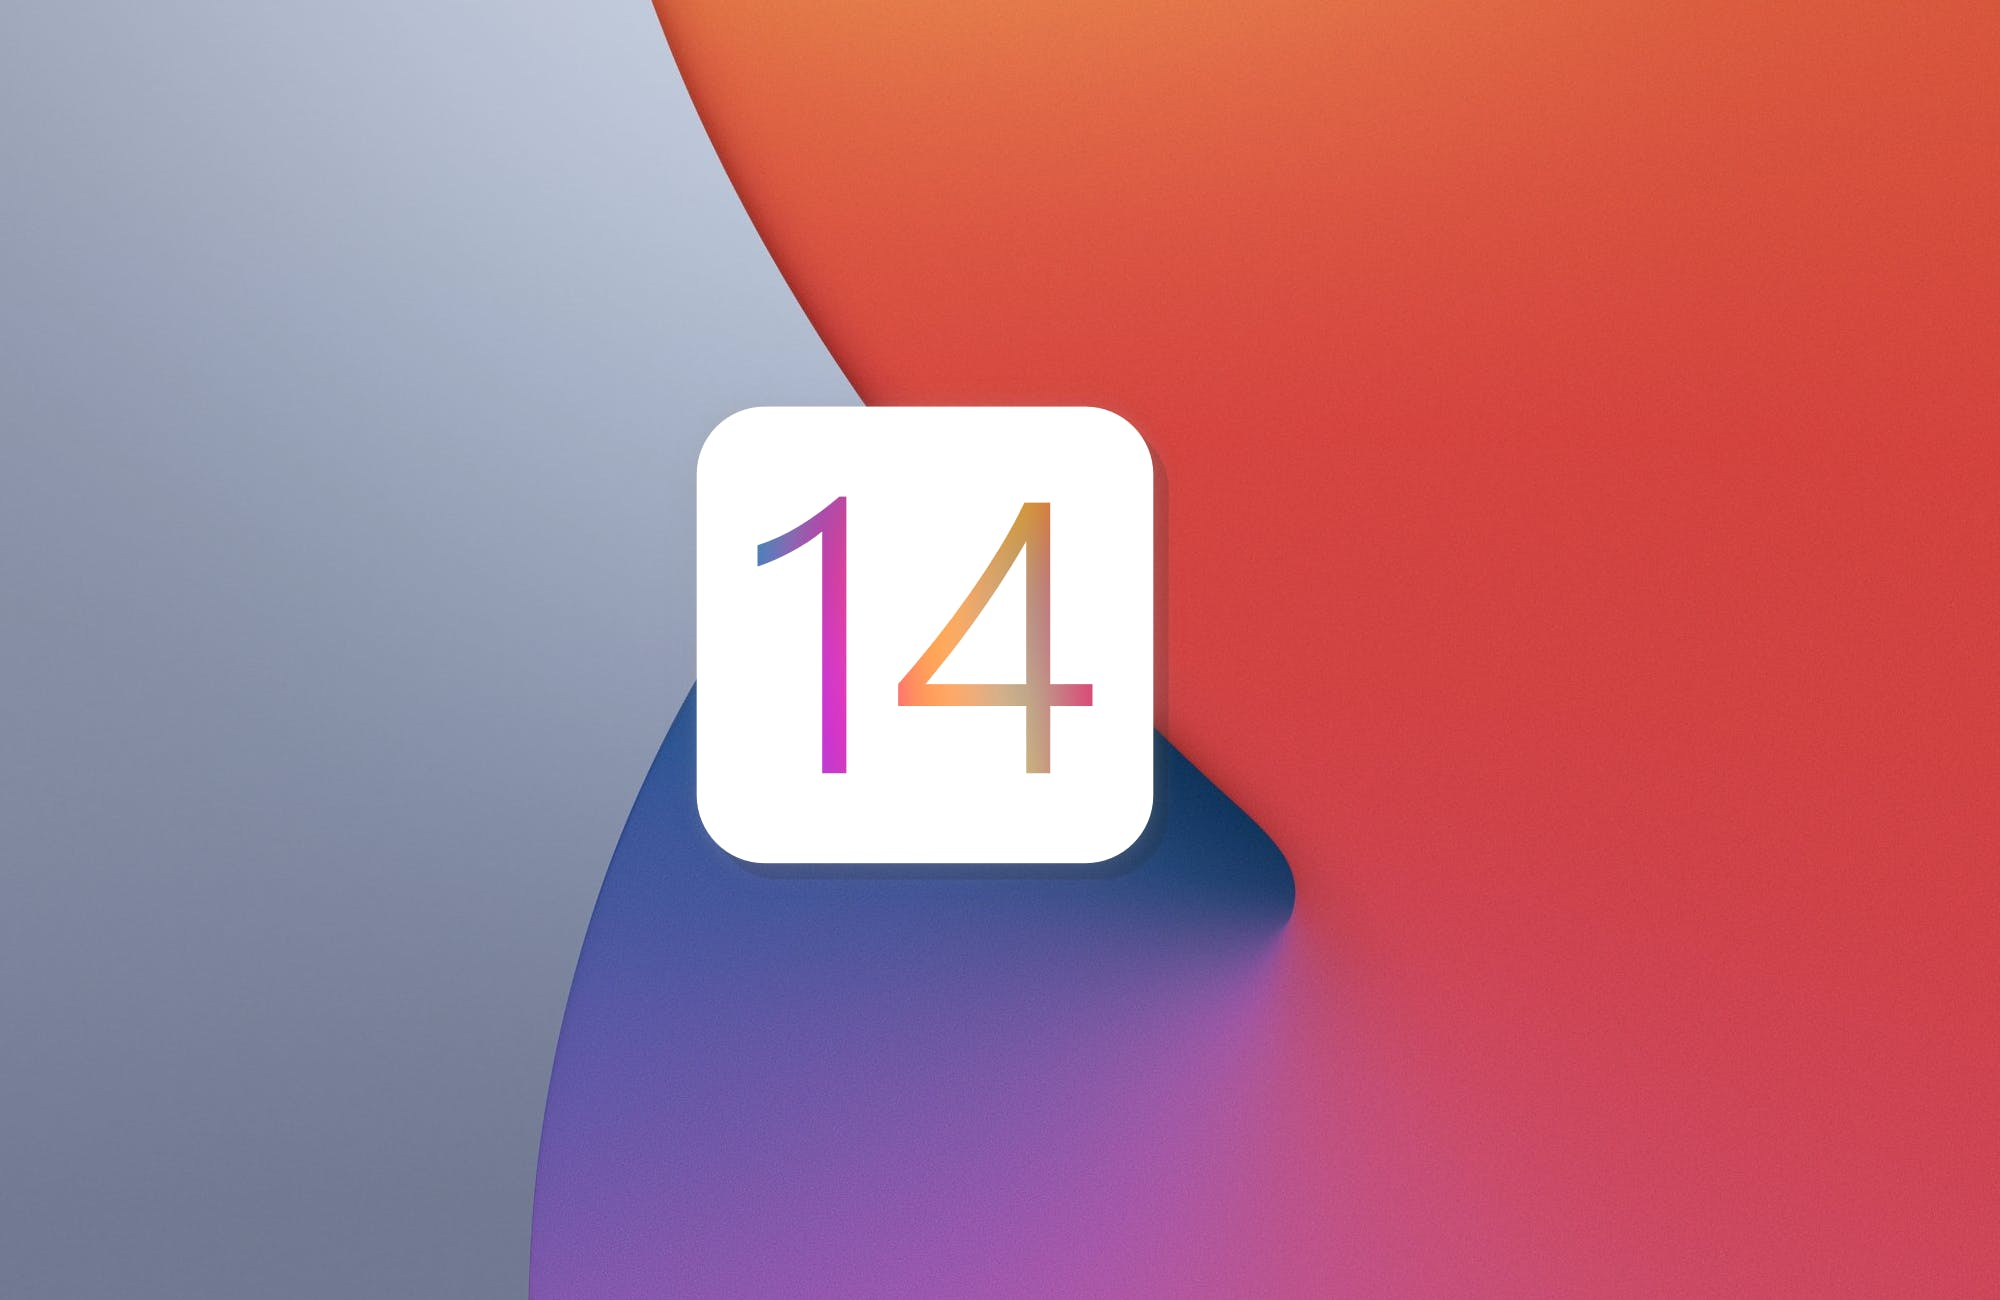 iOS 14: New Features Coming to the iPhone